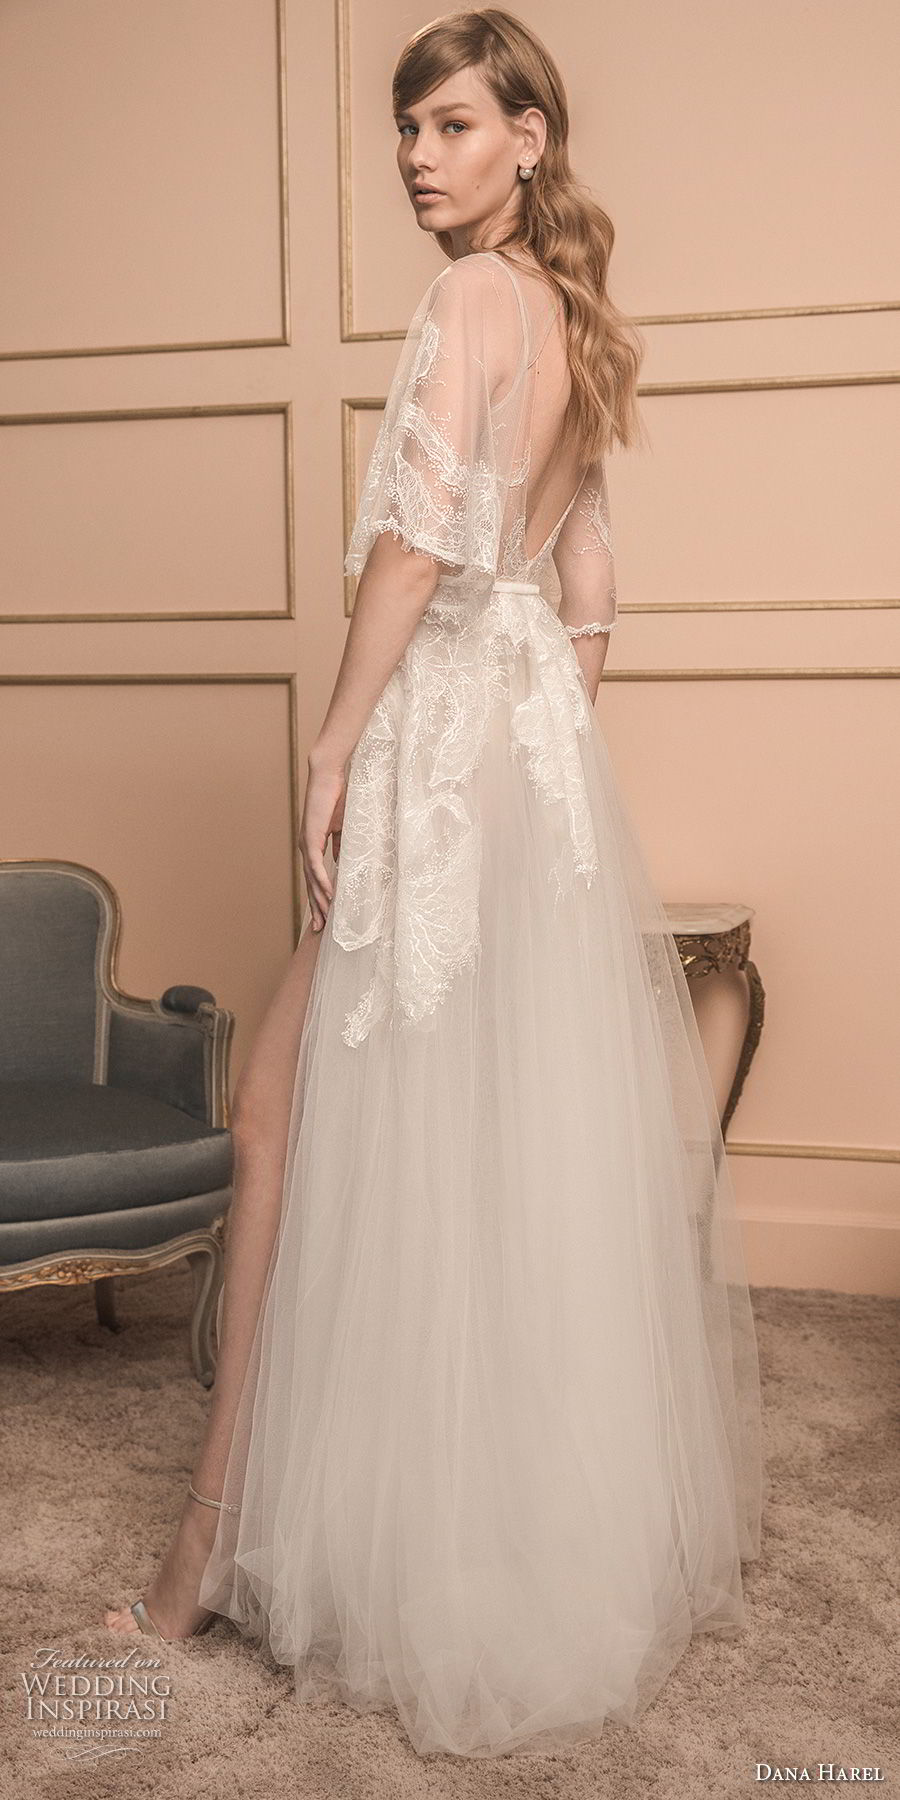 dana harel 2018 bridal half bell sleeves illusion jewel neck heavily embellished bodice high slit skirt romantic a line wedding dress v back sweep train (4) sdv